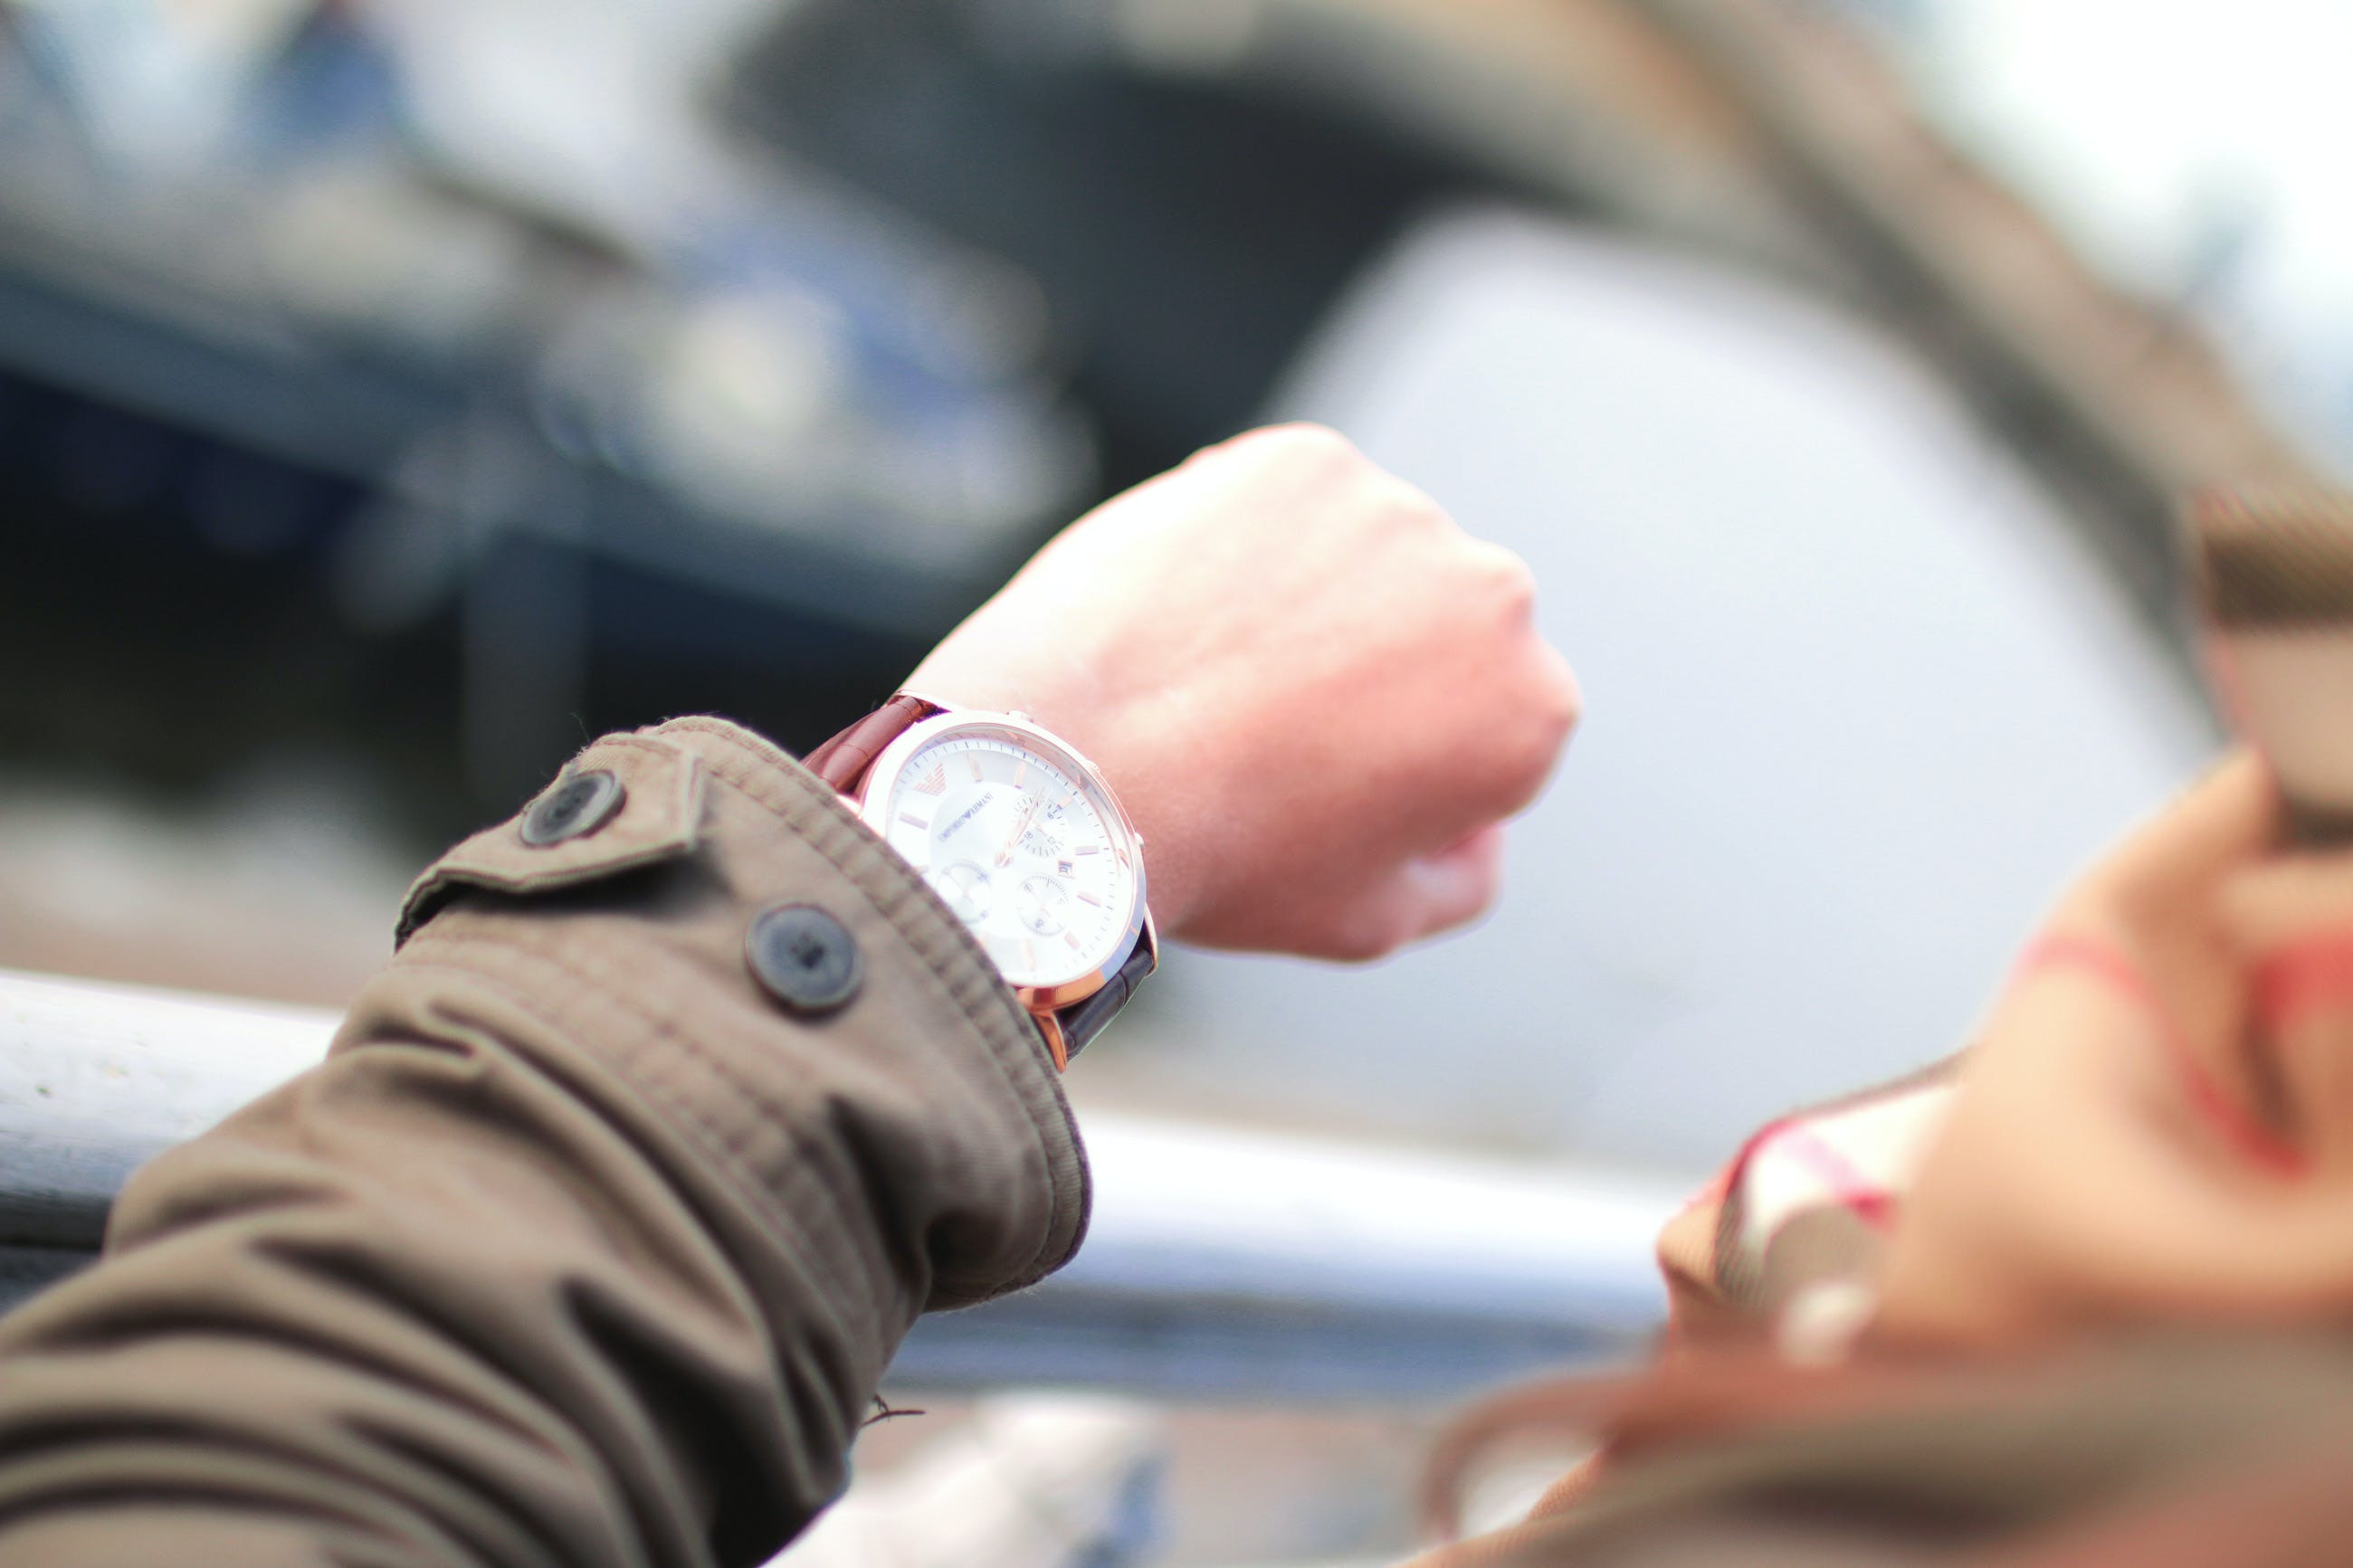 Selective Focus Photography of Person Watching Watch